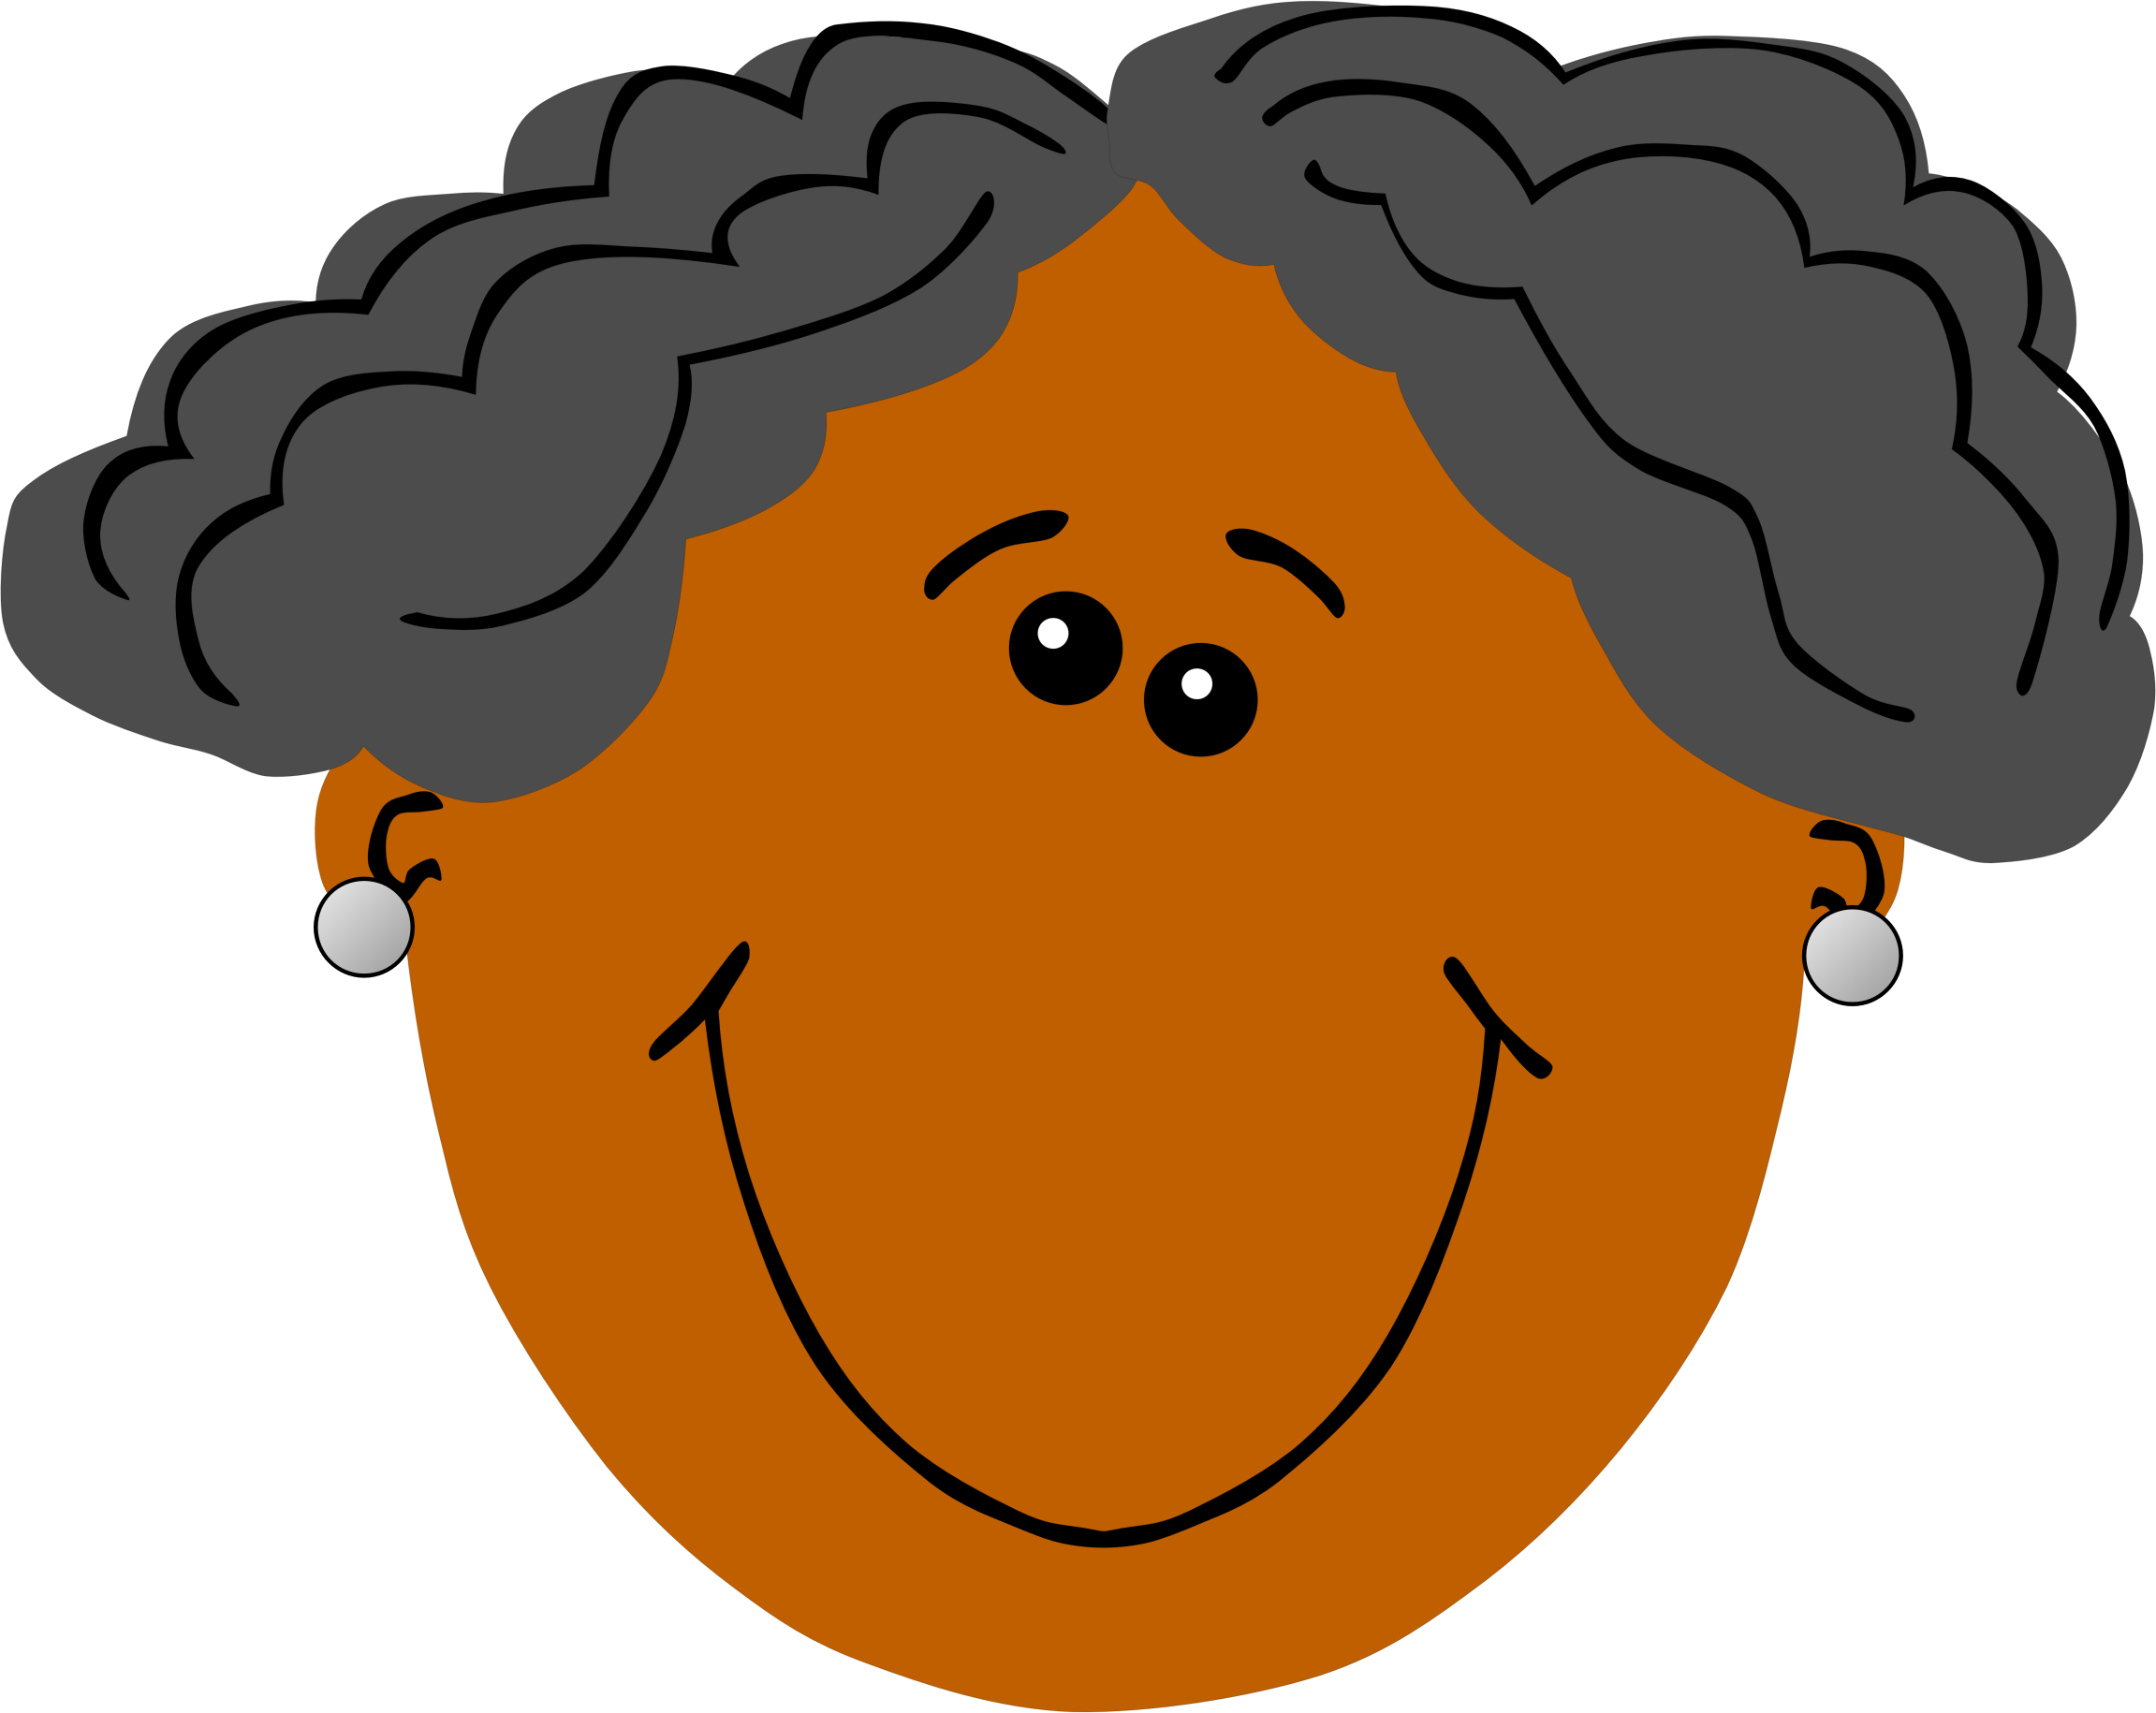 African clipart grandmother. Grandma with dark skin